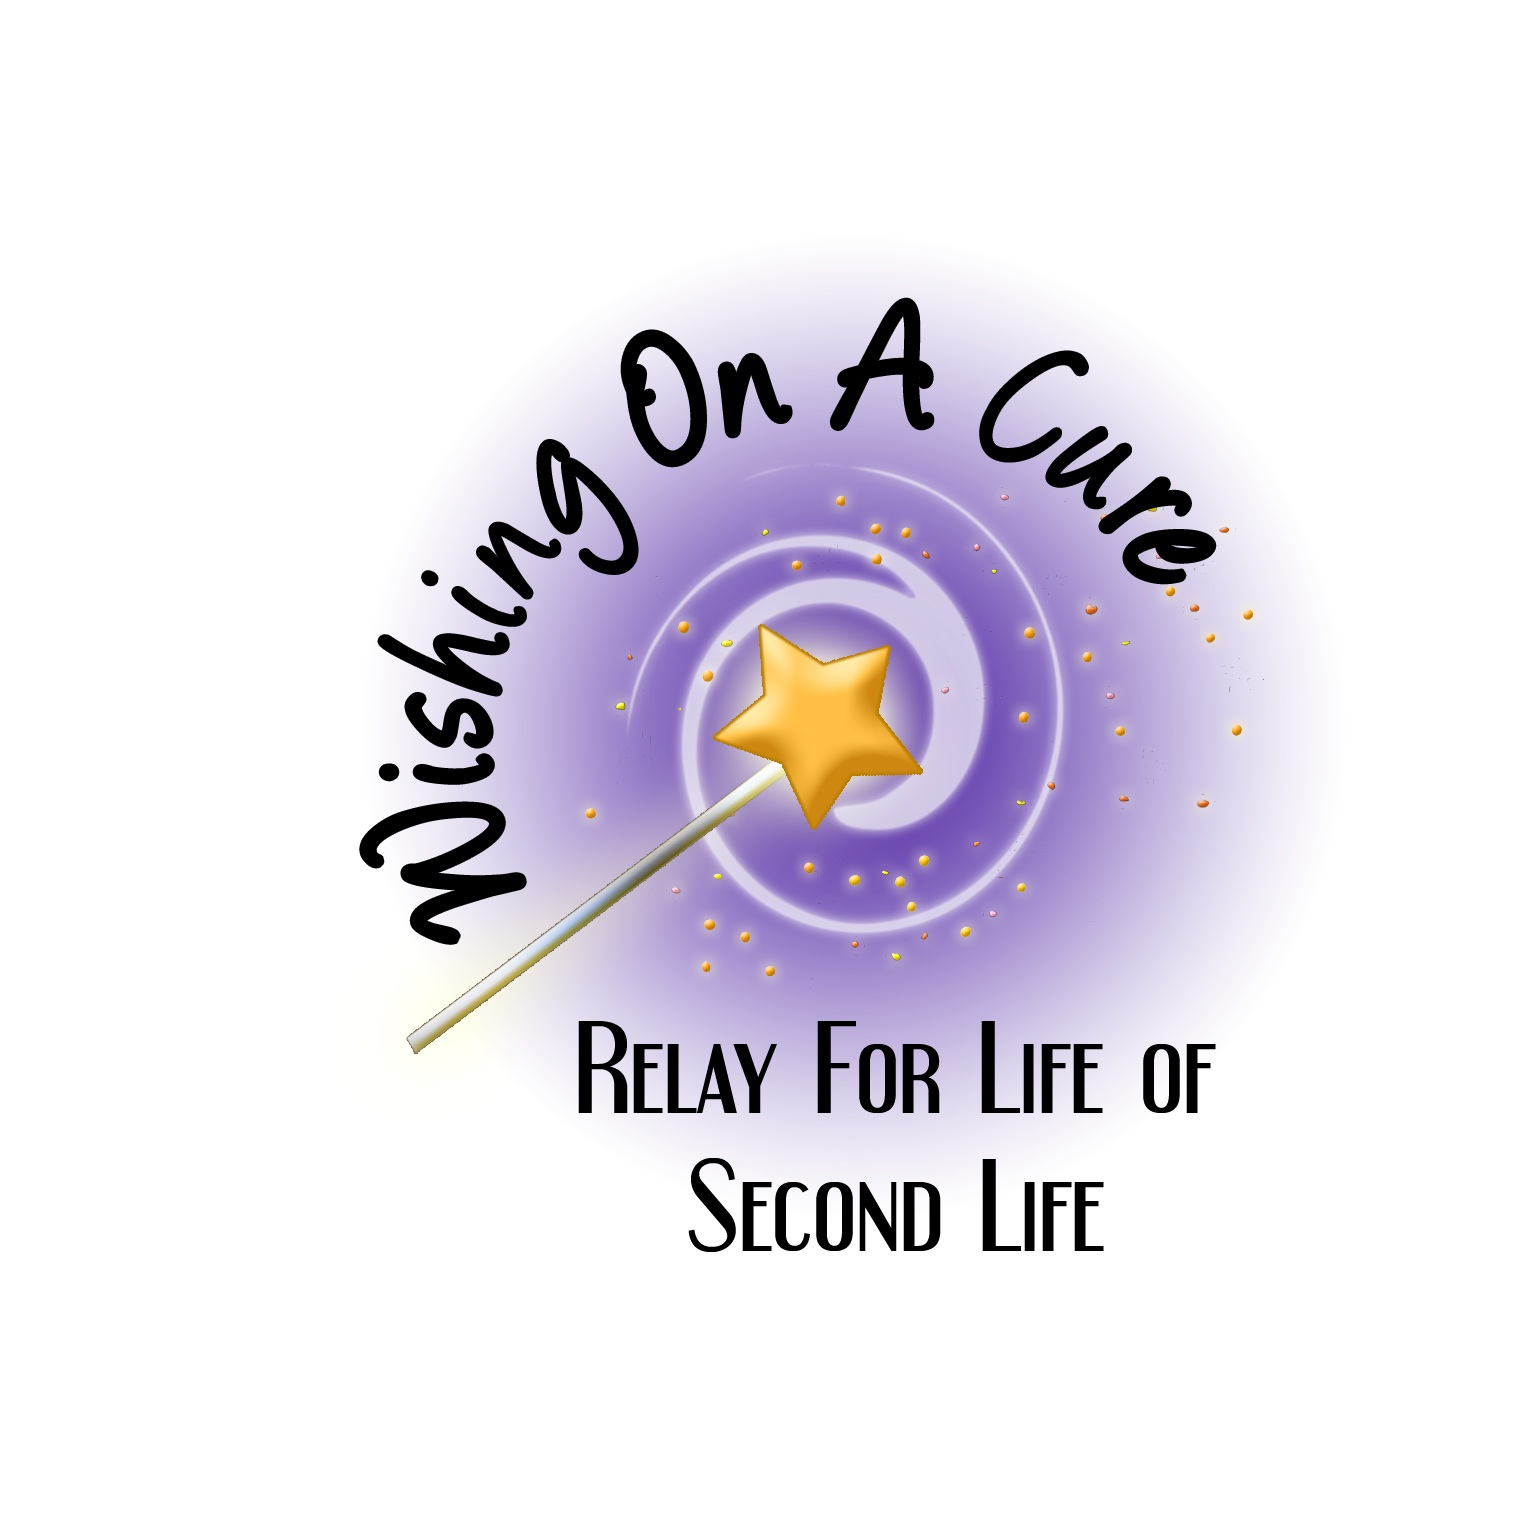 Press release relay for life